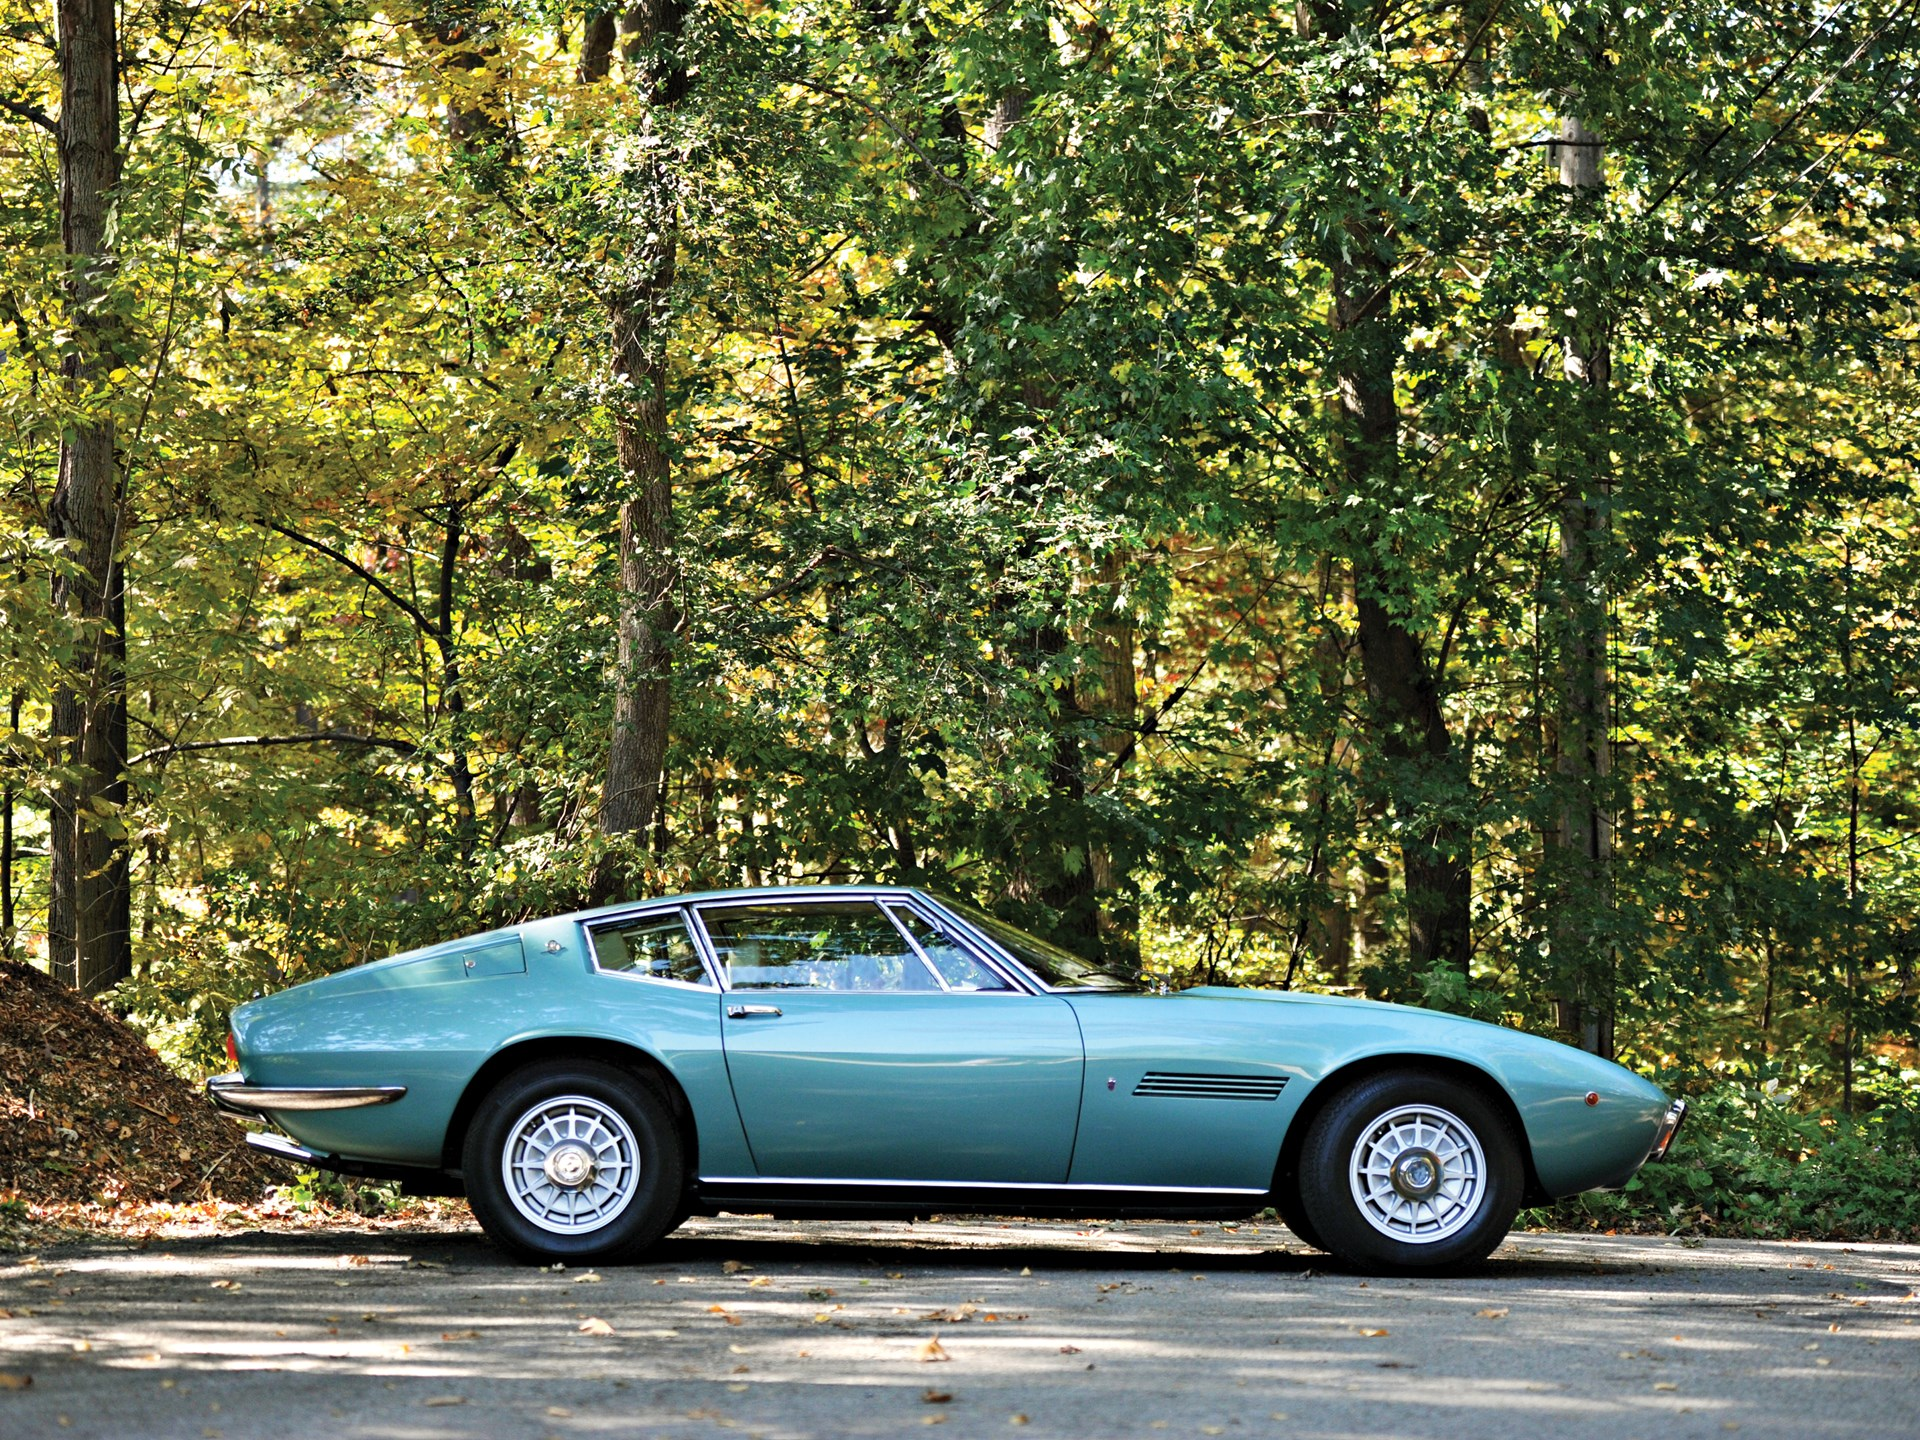 RM Sotheby's - 1972 Maserati Ghibli SS 4.9 Coupe by Ghia ...